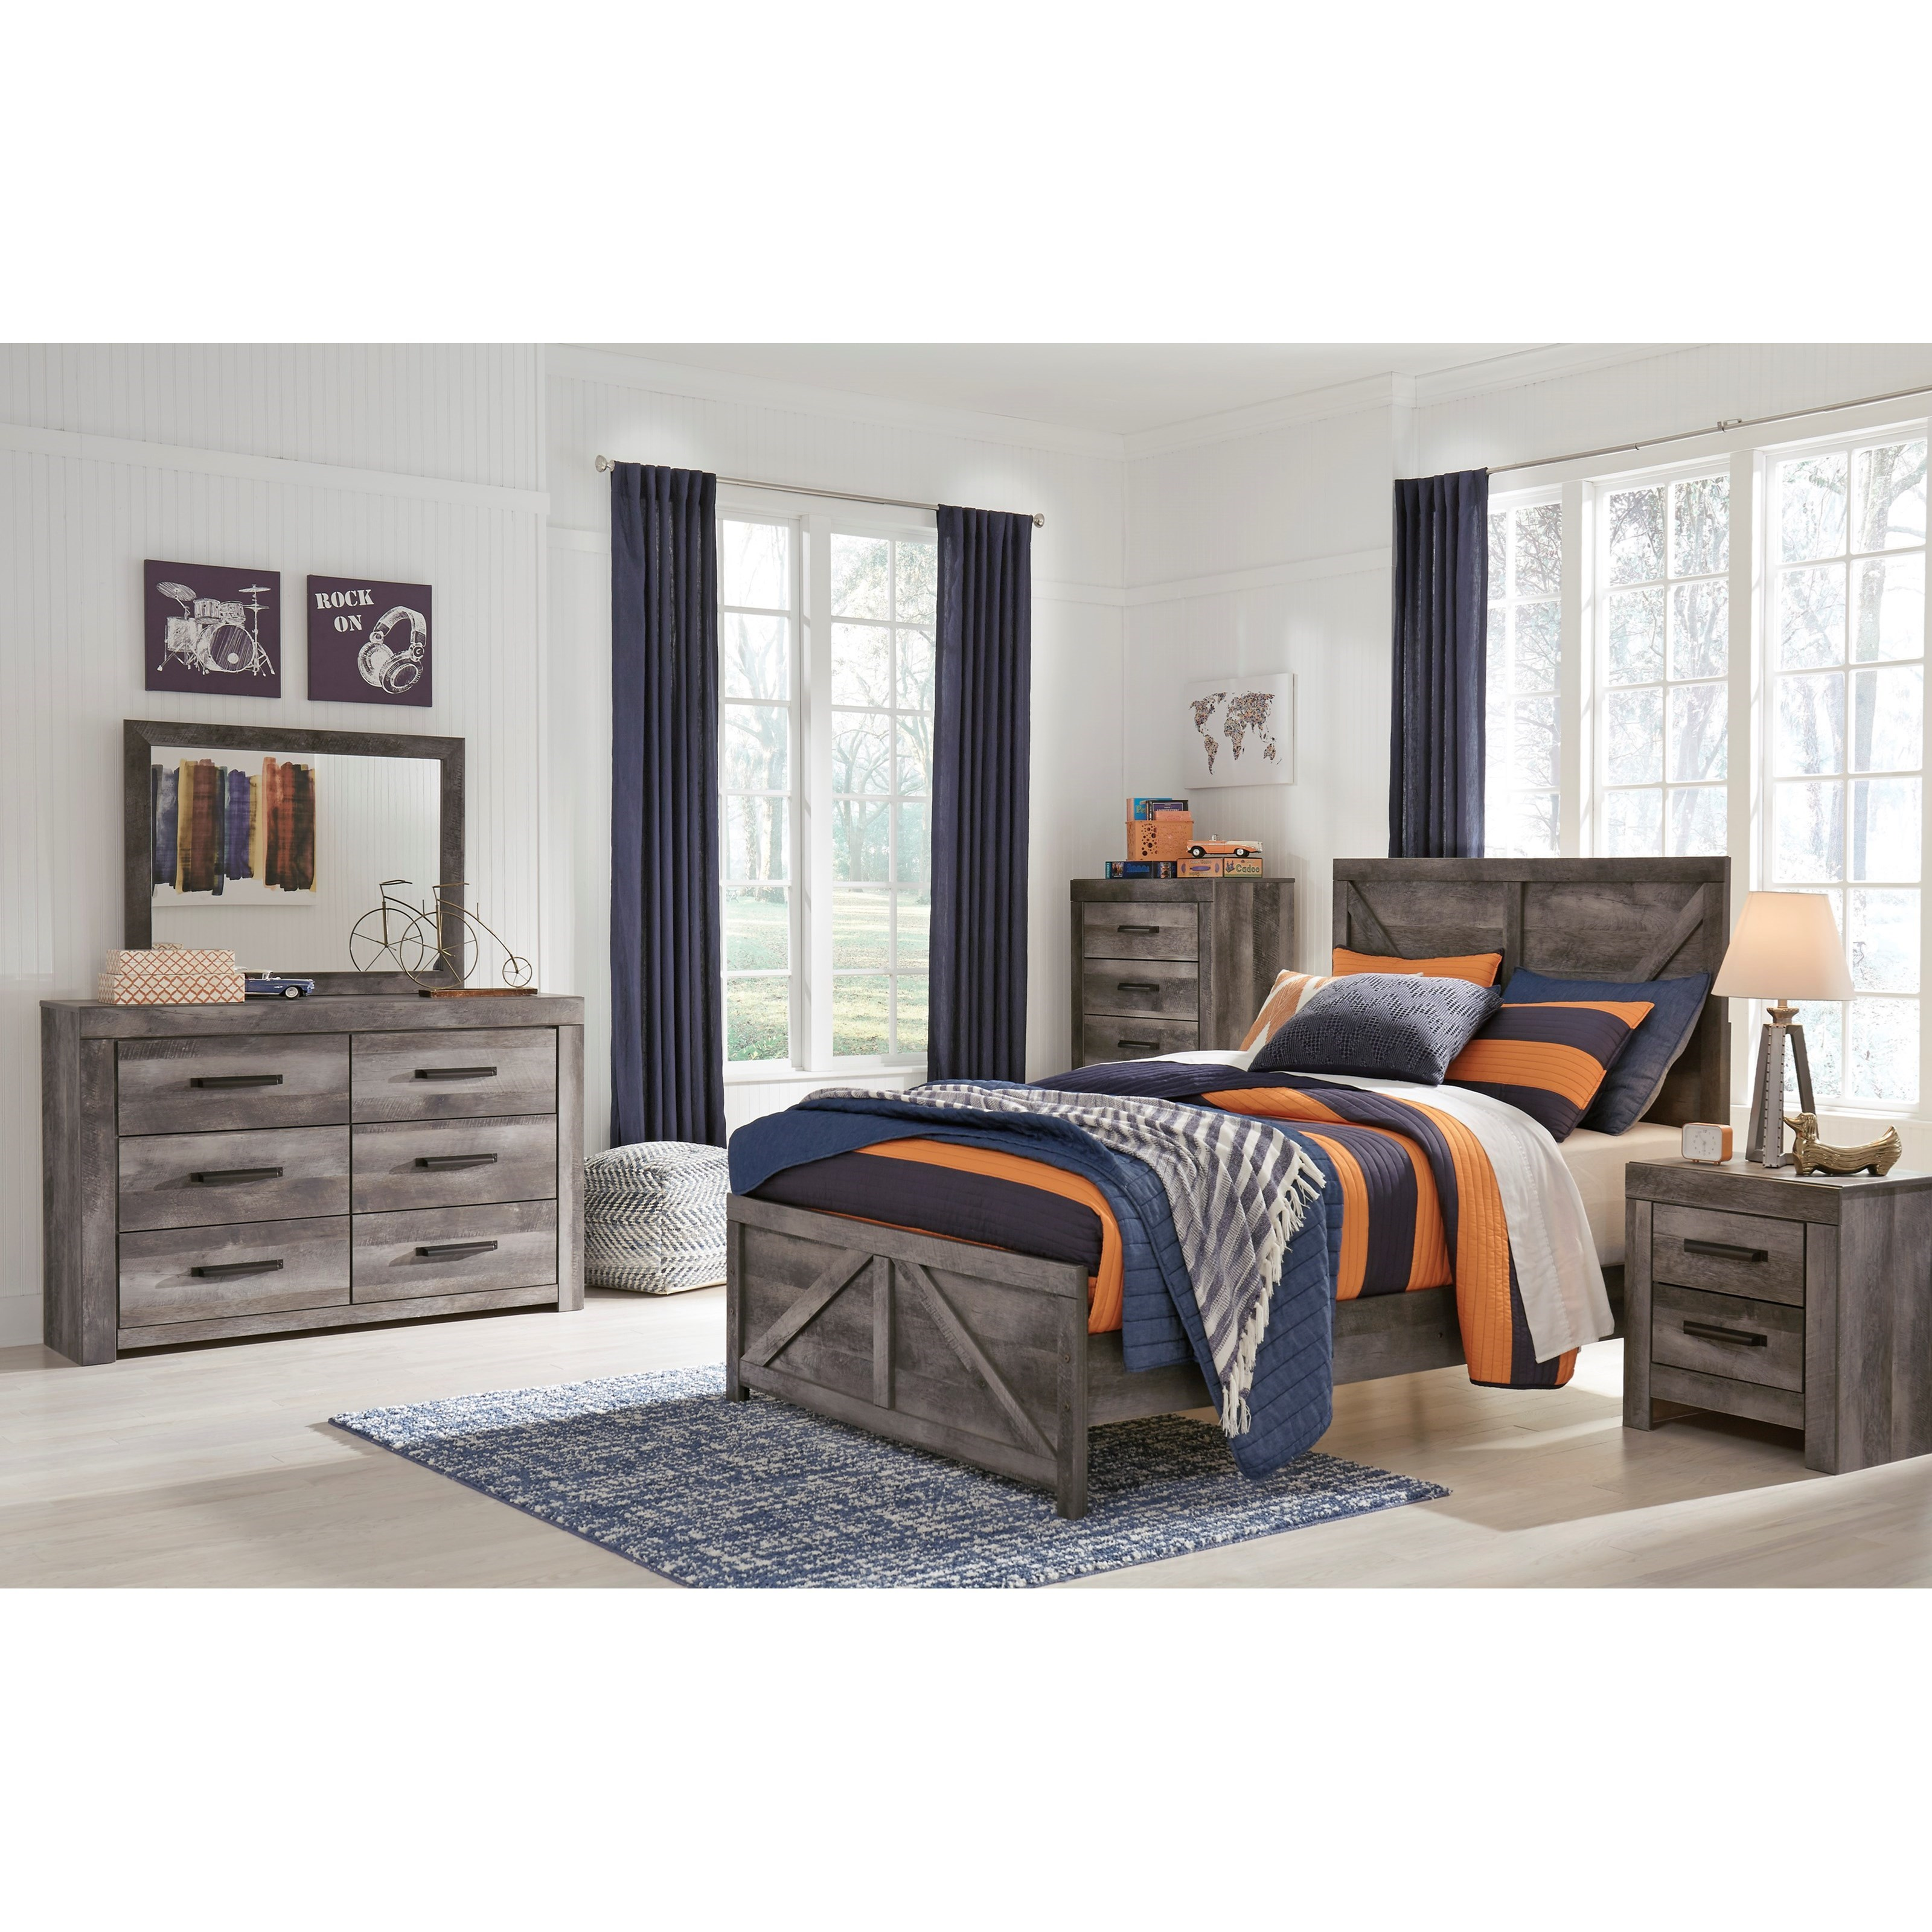 Wynnlow Full Bedroom Group by Signature Design by Ashley at Catalog Outlet